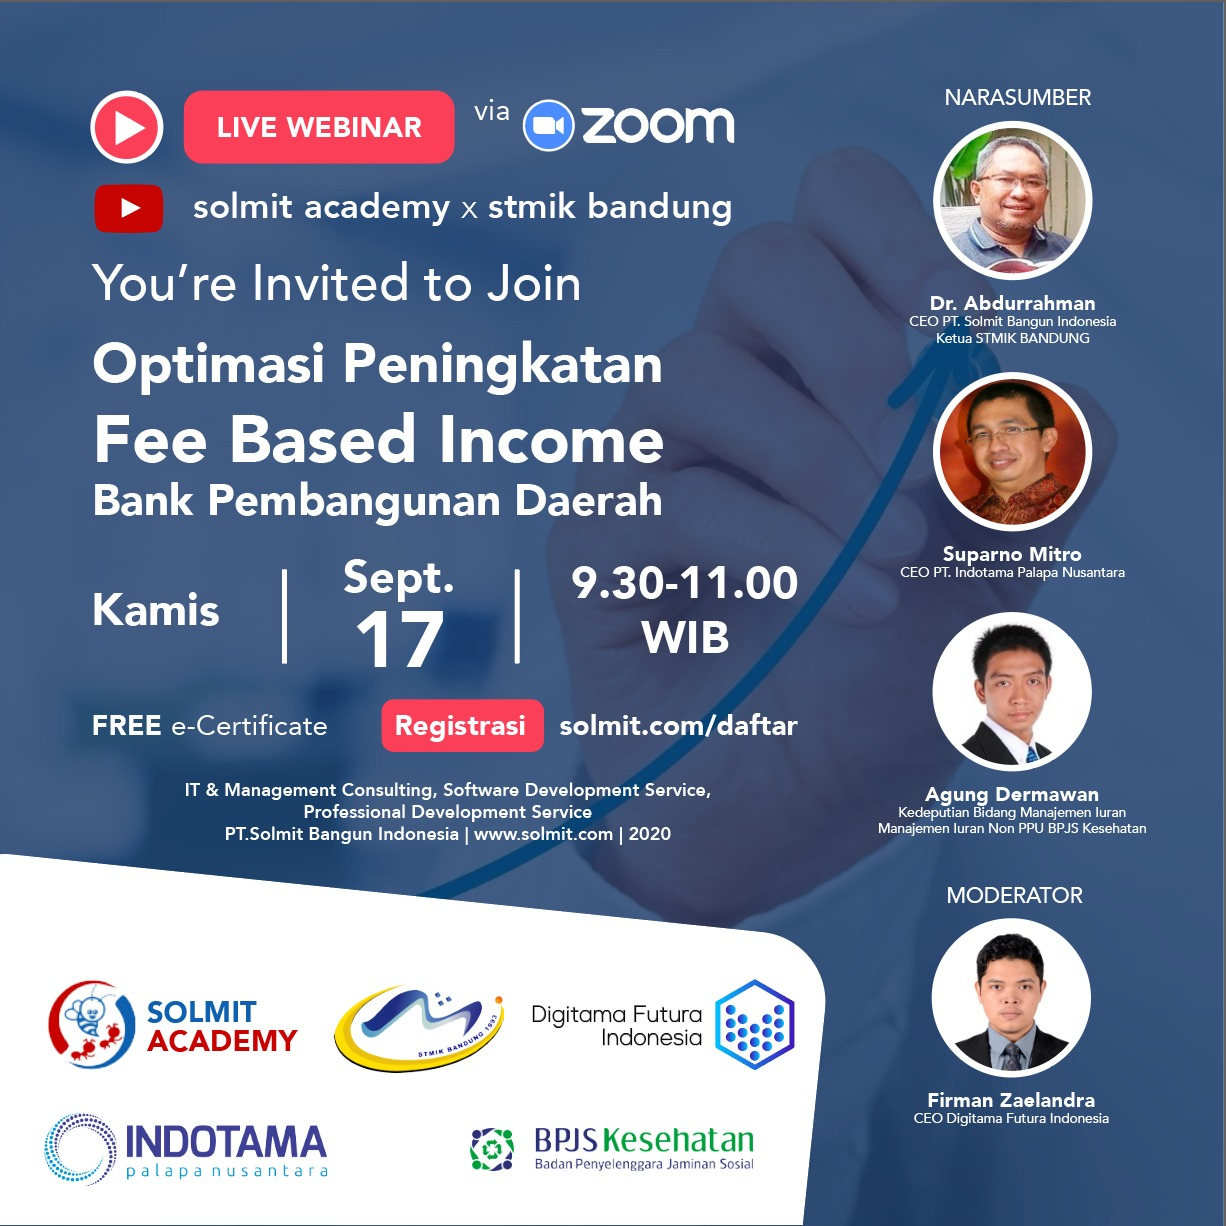 WEBINAR OPTIMASI PENINGKATAN FEE BASED INCOME BANK PEMBANGUNAN DAERAH